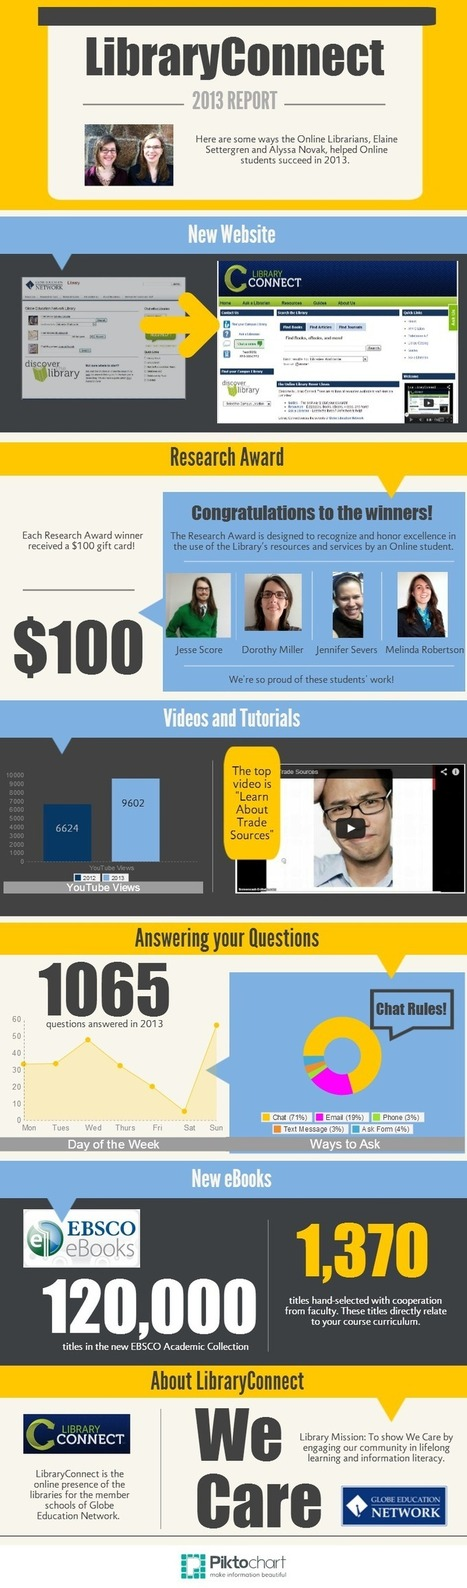 Online Library 2013 Review | continuing education | Scoop.it